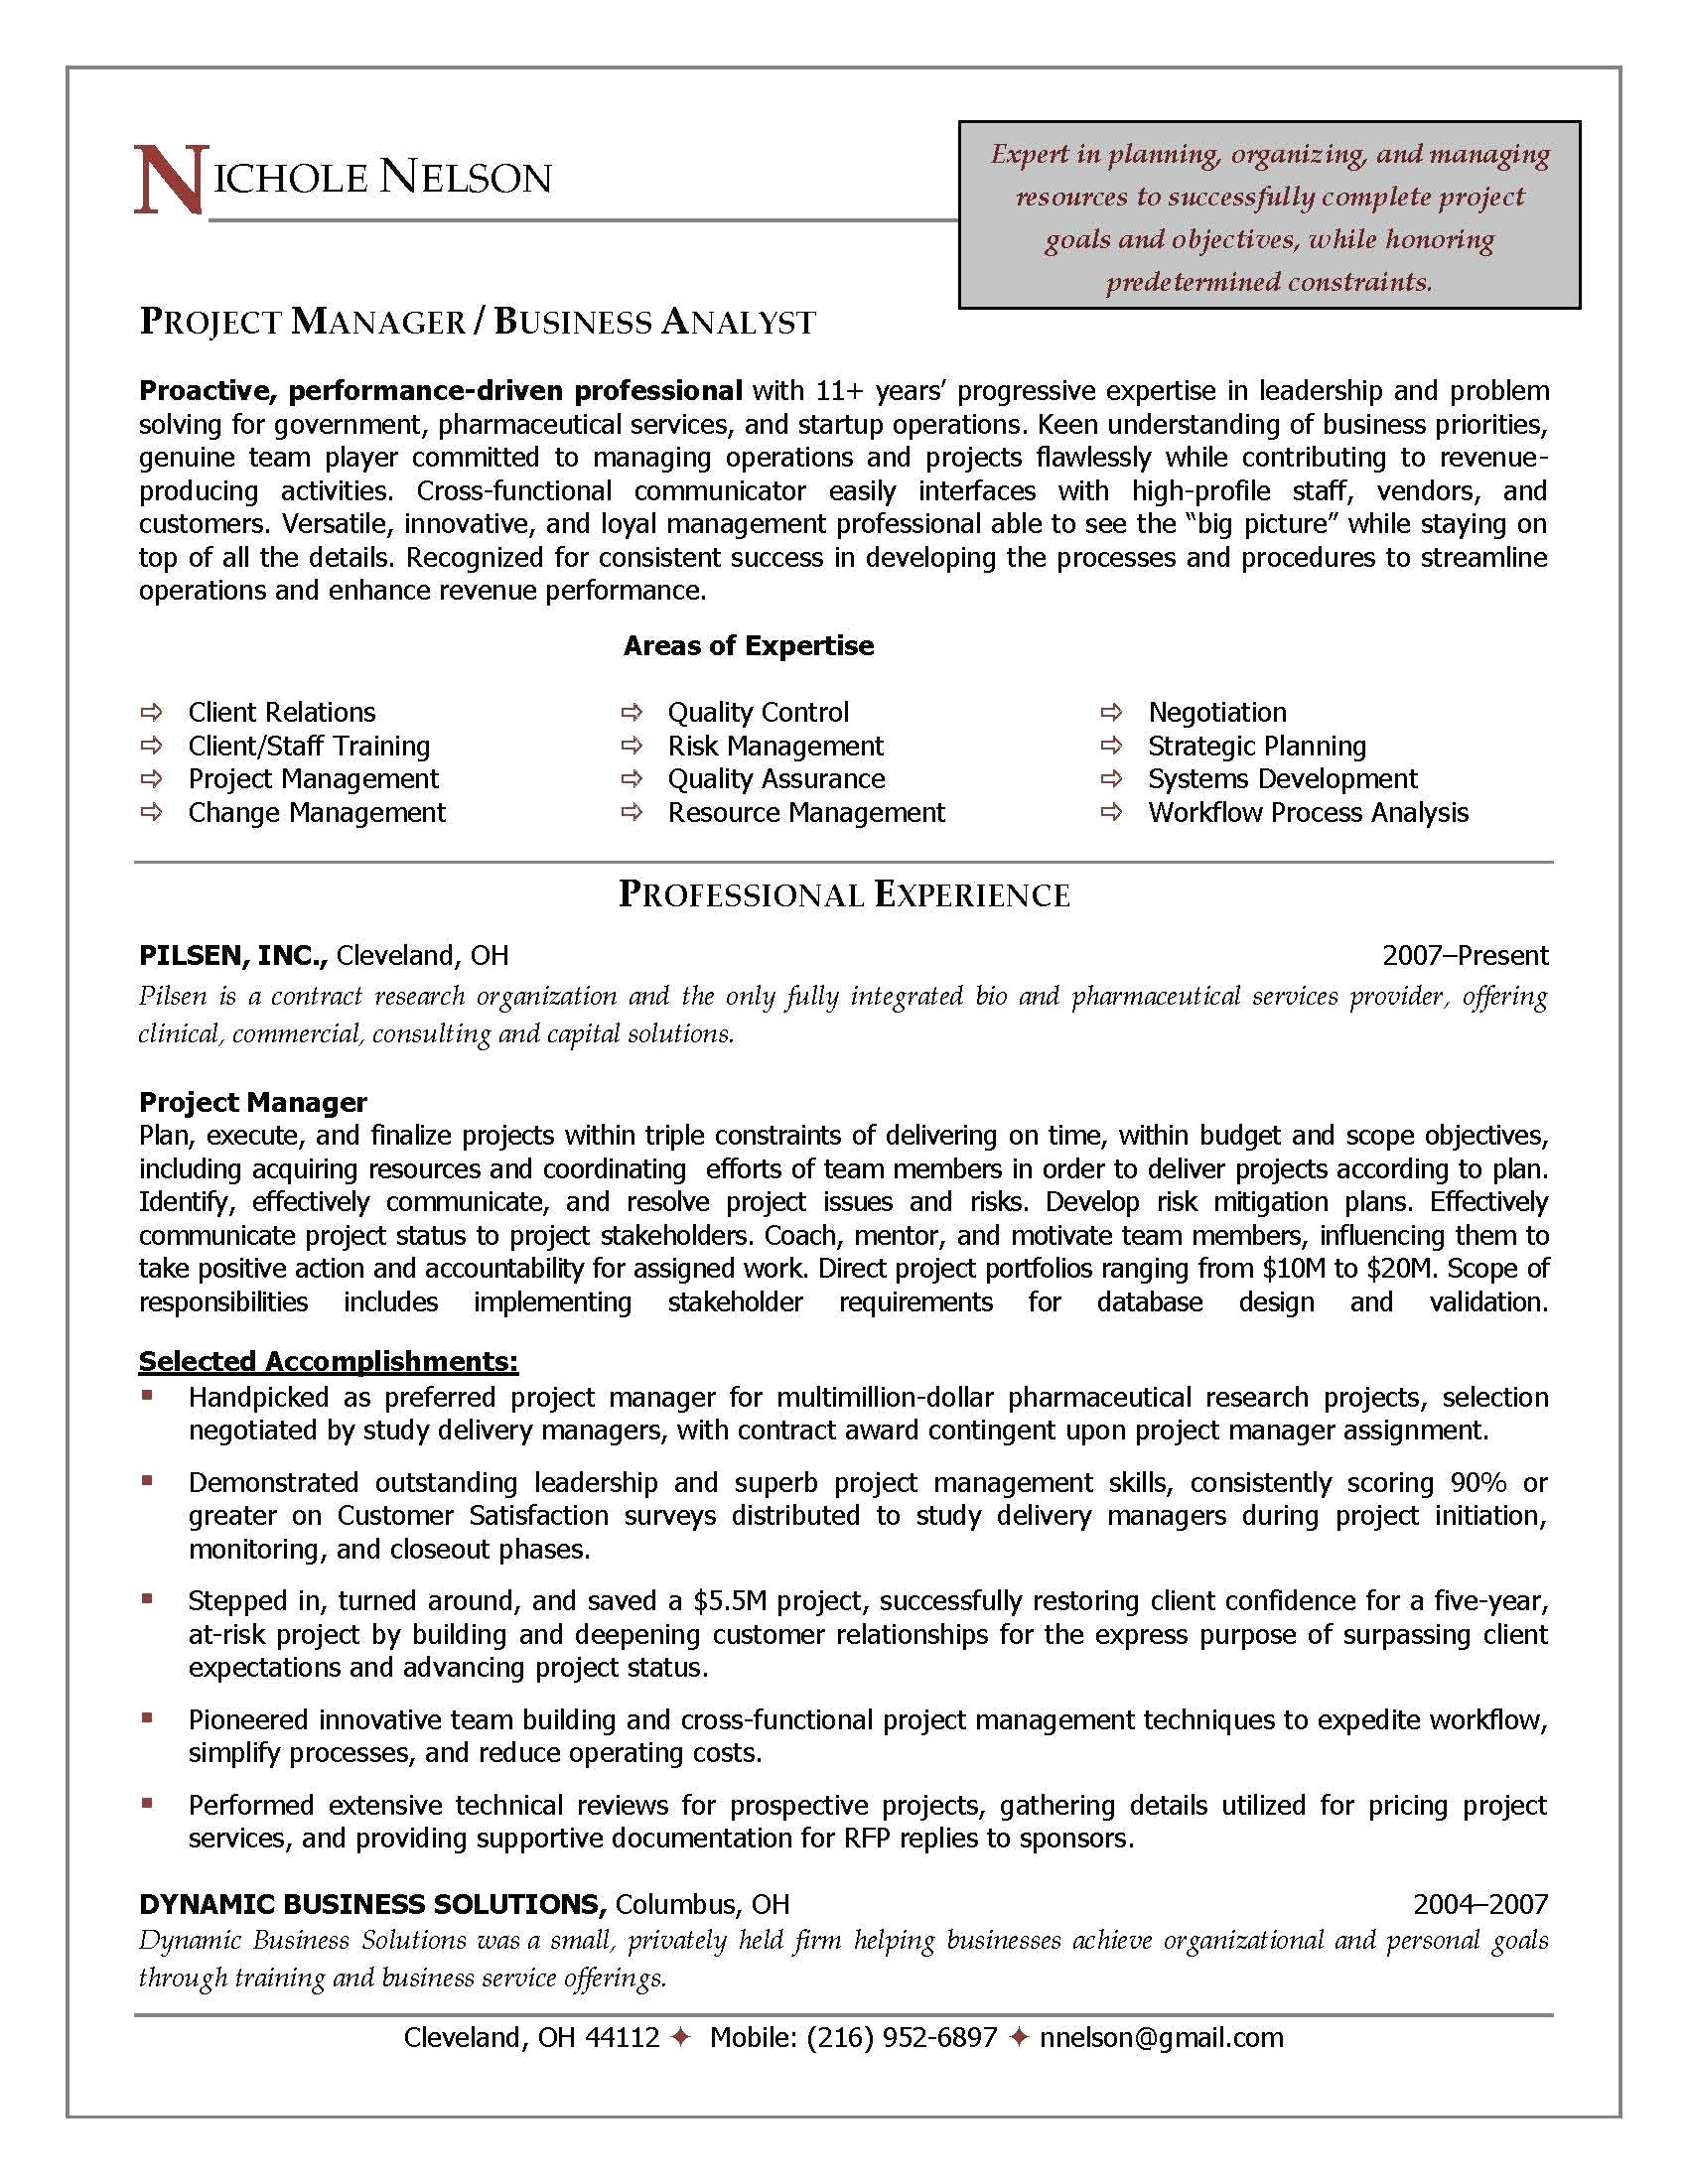 Blank Resume Pdf - 39 Unbelievable Resume Templates Pdf